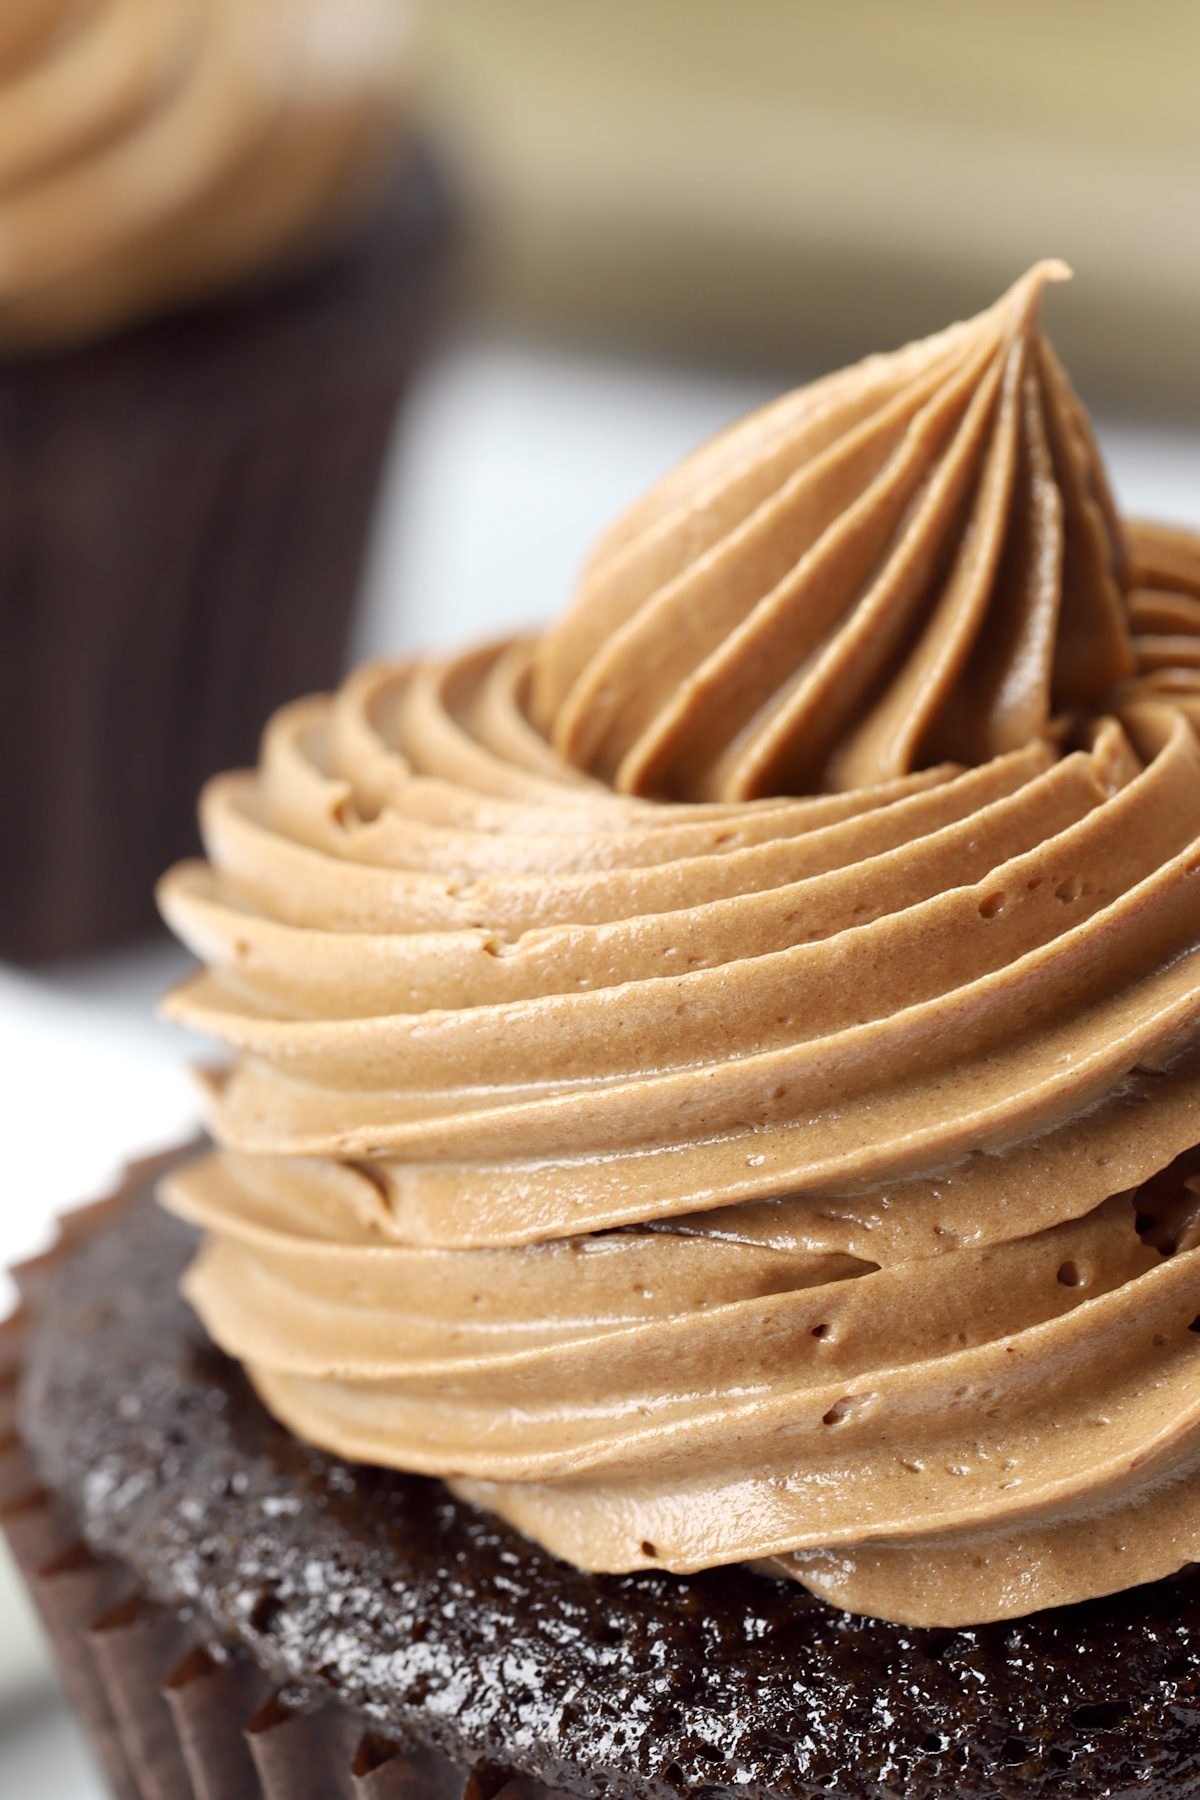 Chocolate frosting piped onto a cupcake.